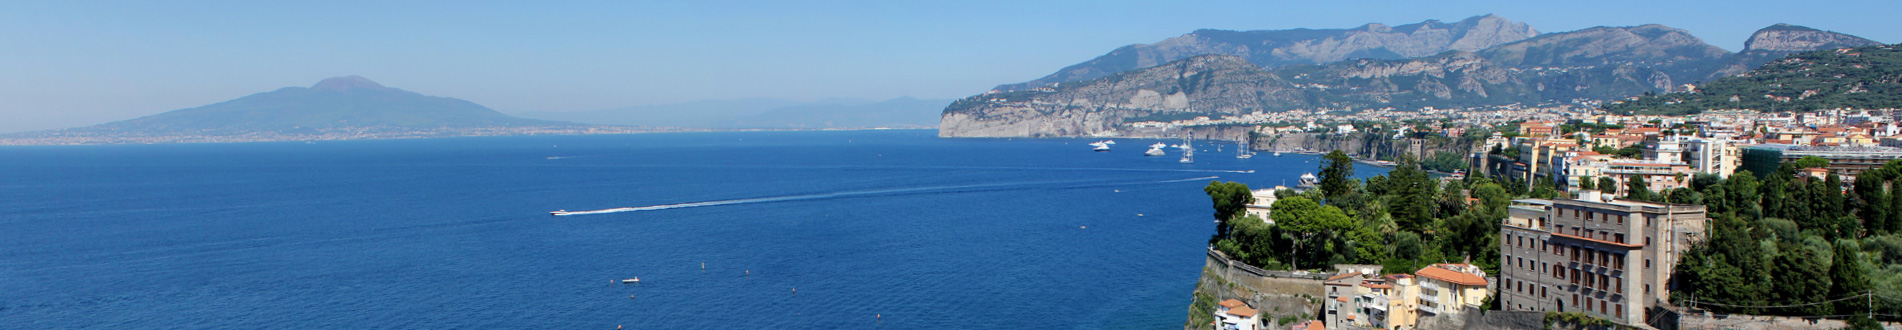 The Gulf of Naples from Sorrento